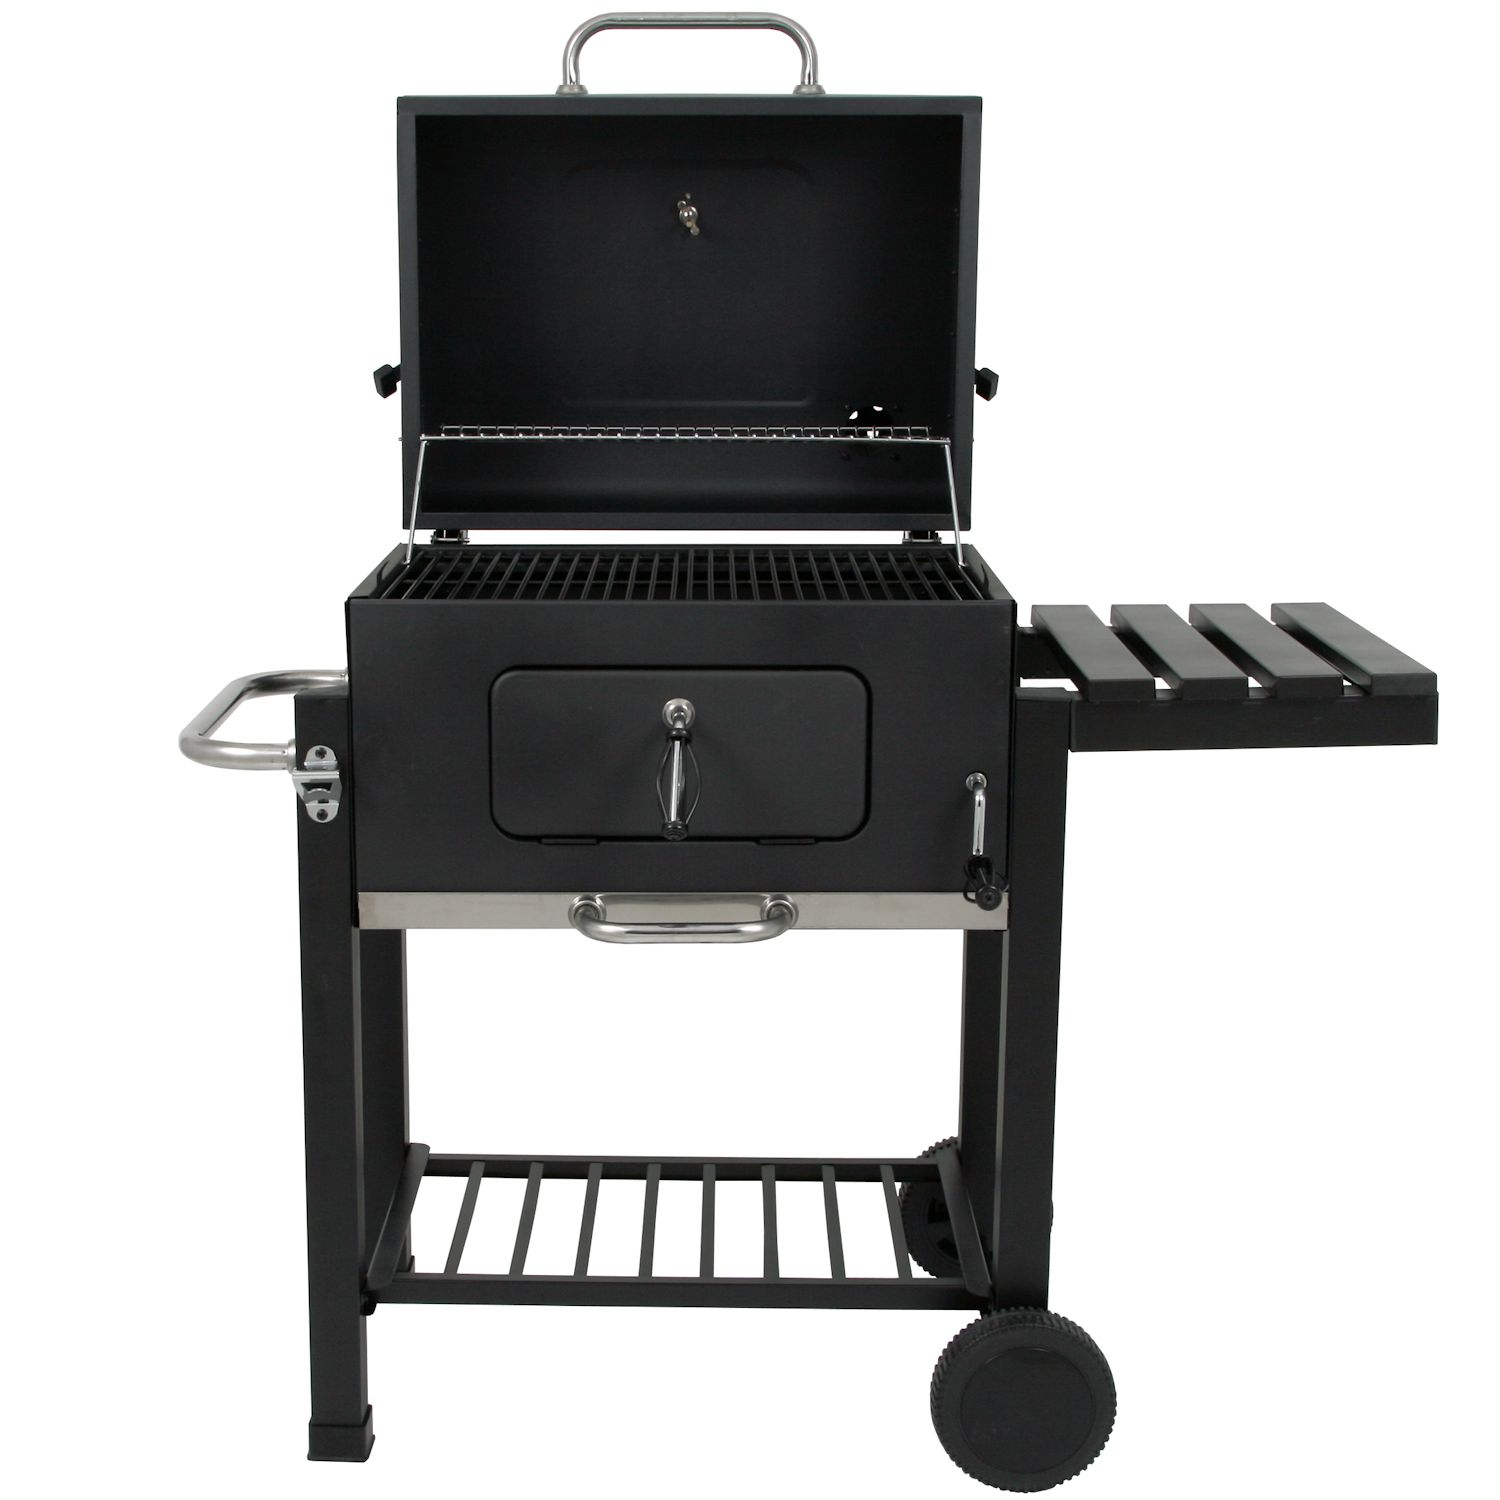 bbq toro holzkohle grillwagen black oak bbq smoker barbecue grill gartengrill ebay. Black Bedroom Furniture Sets. Home Design Ideas